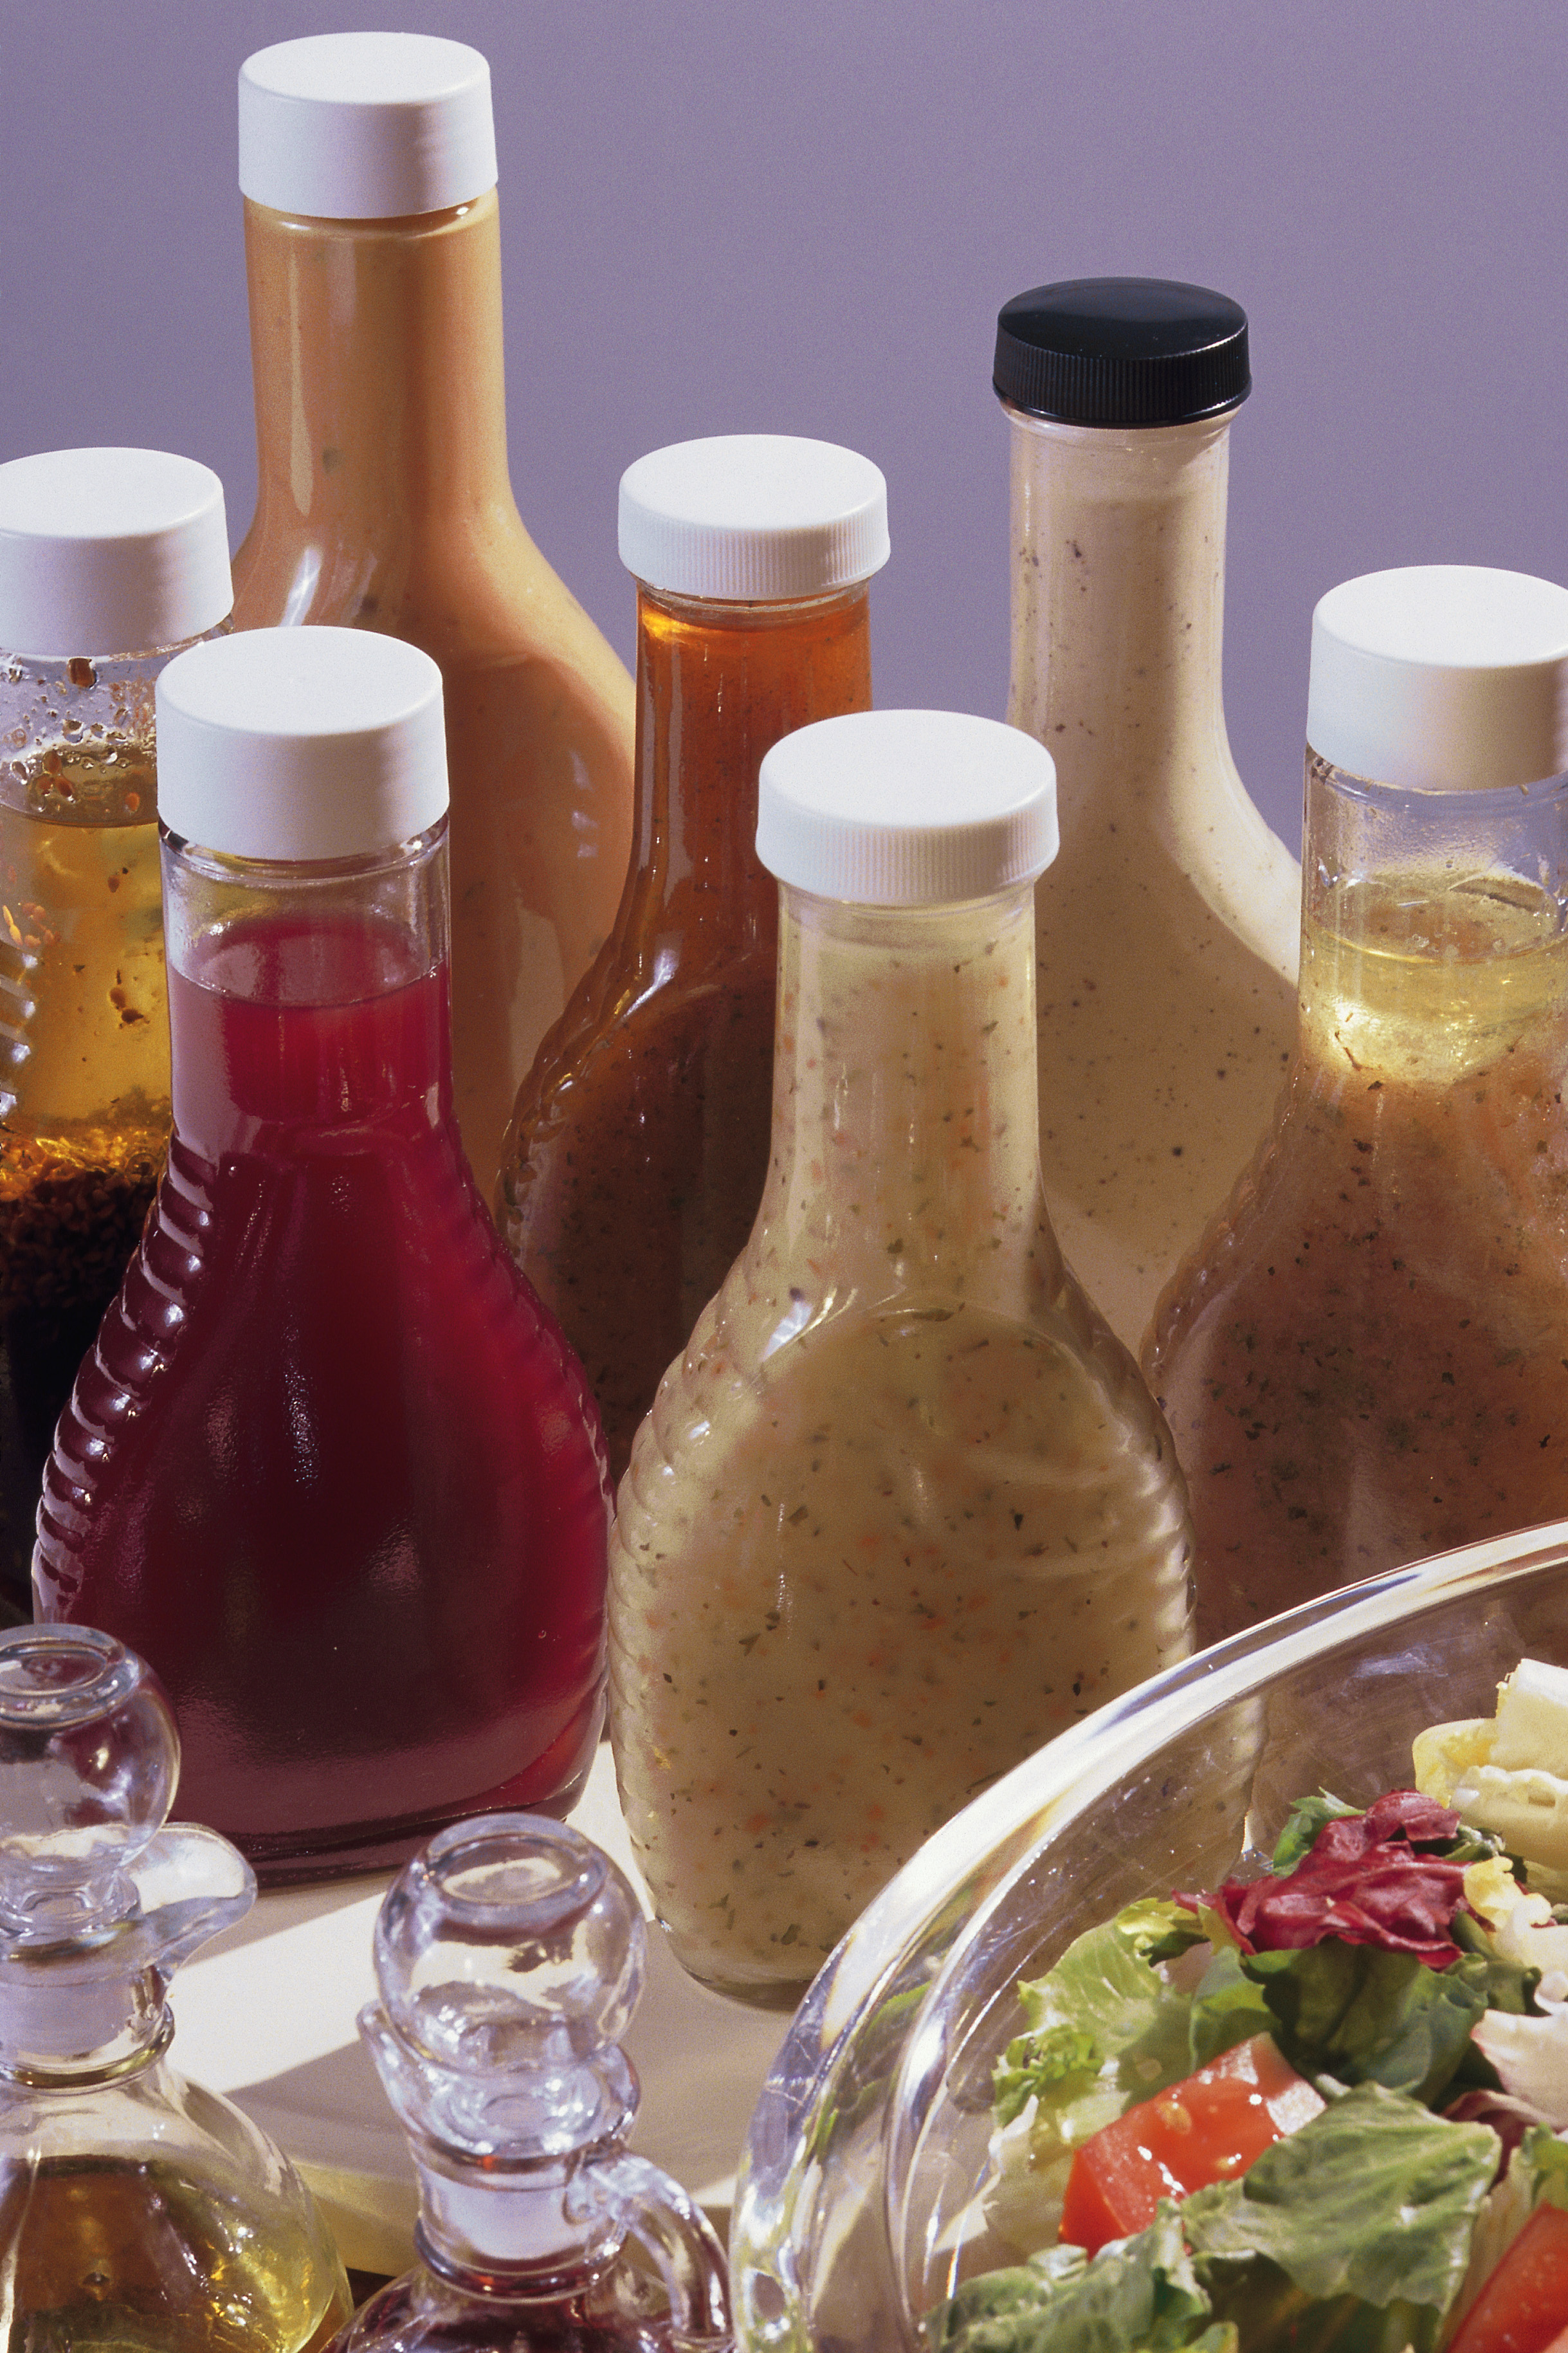 What Salad Dressing Is OK For The Atkins Diet?